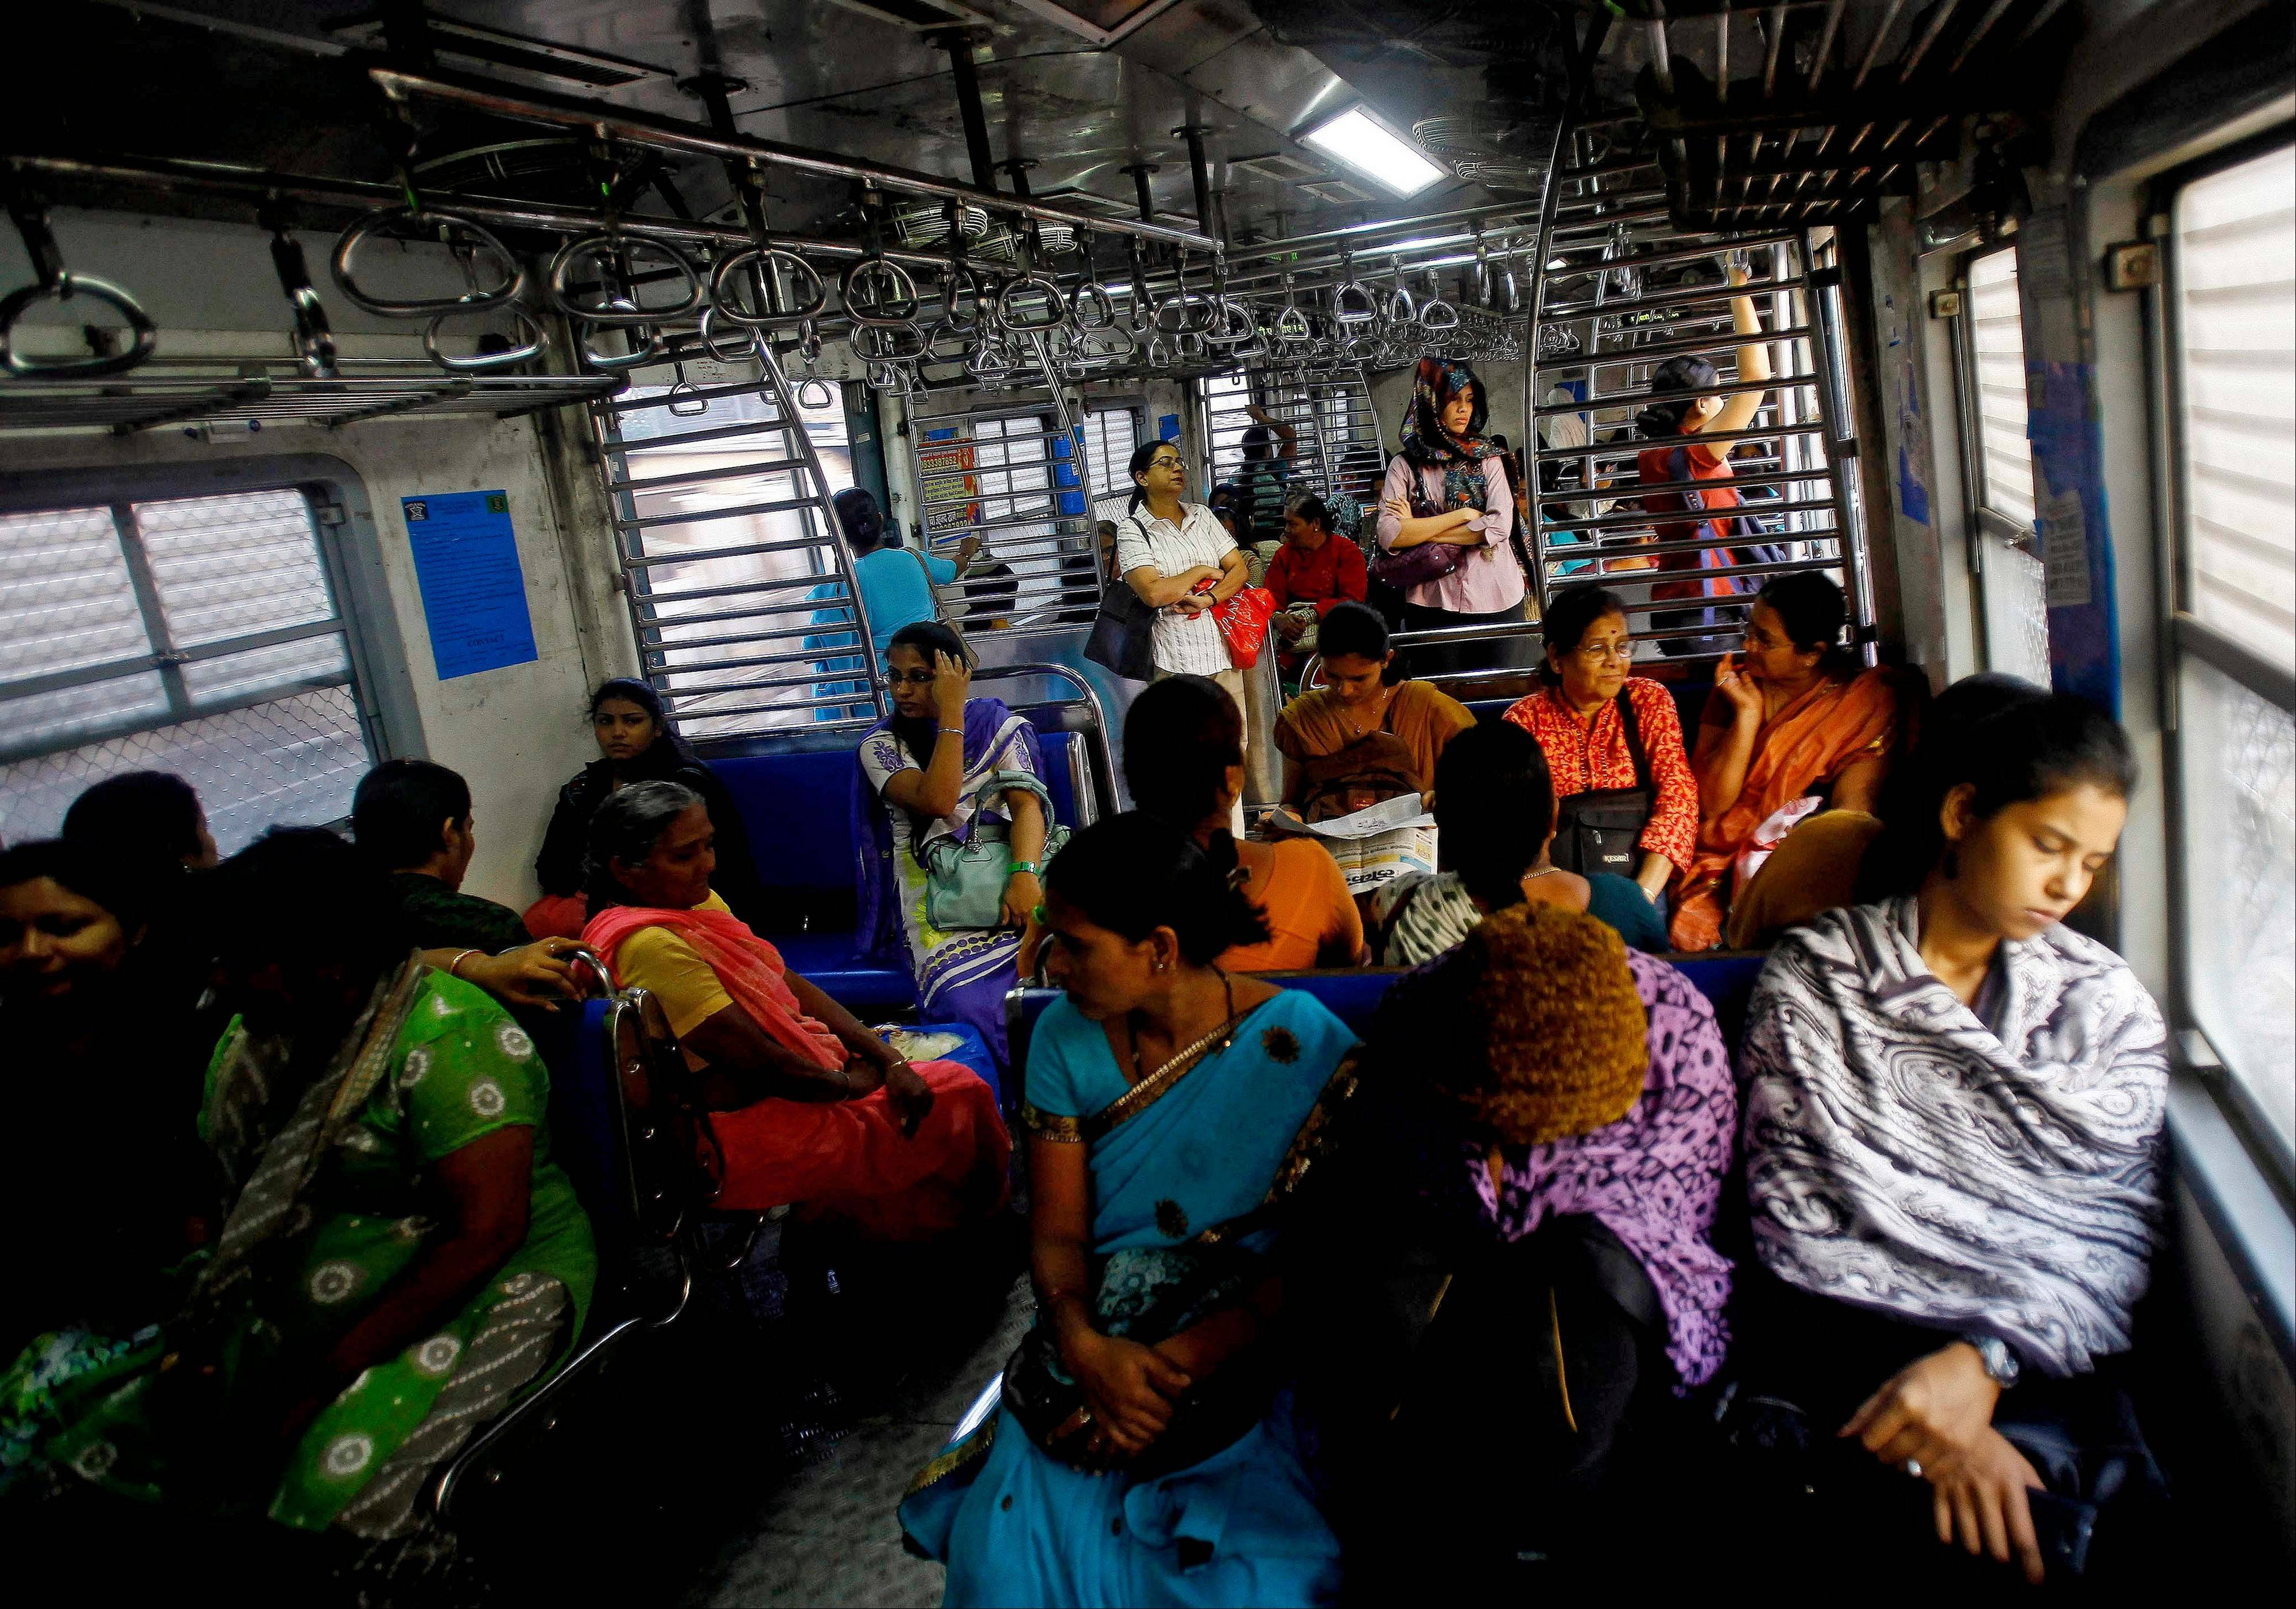 Indian women travel in the women's compartment of a train early morning in Mumbai, India, Thursday, Jan. 10, 2013. Five men have been charged with attacking the 23-year-old woman and a male friend on a bus as it was driven through the streets of India's capital. The woman was raped and assaulted with a metal bar on Dec. 16, 2012 and eventually died of her injuries. The case has sparked protests across India by women and men who say India's legal system doesn't do enough to prevent attacks on women.